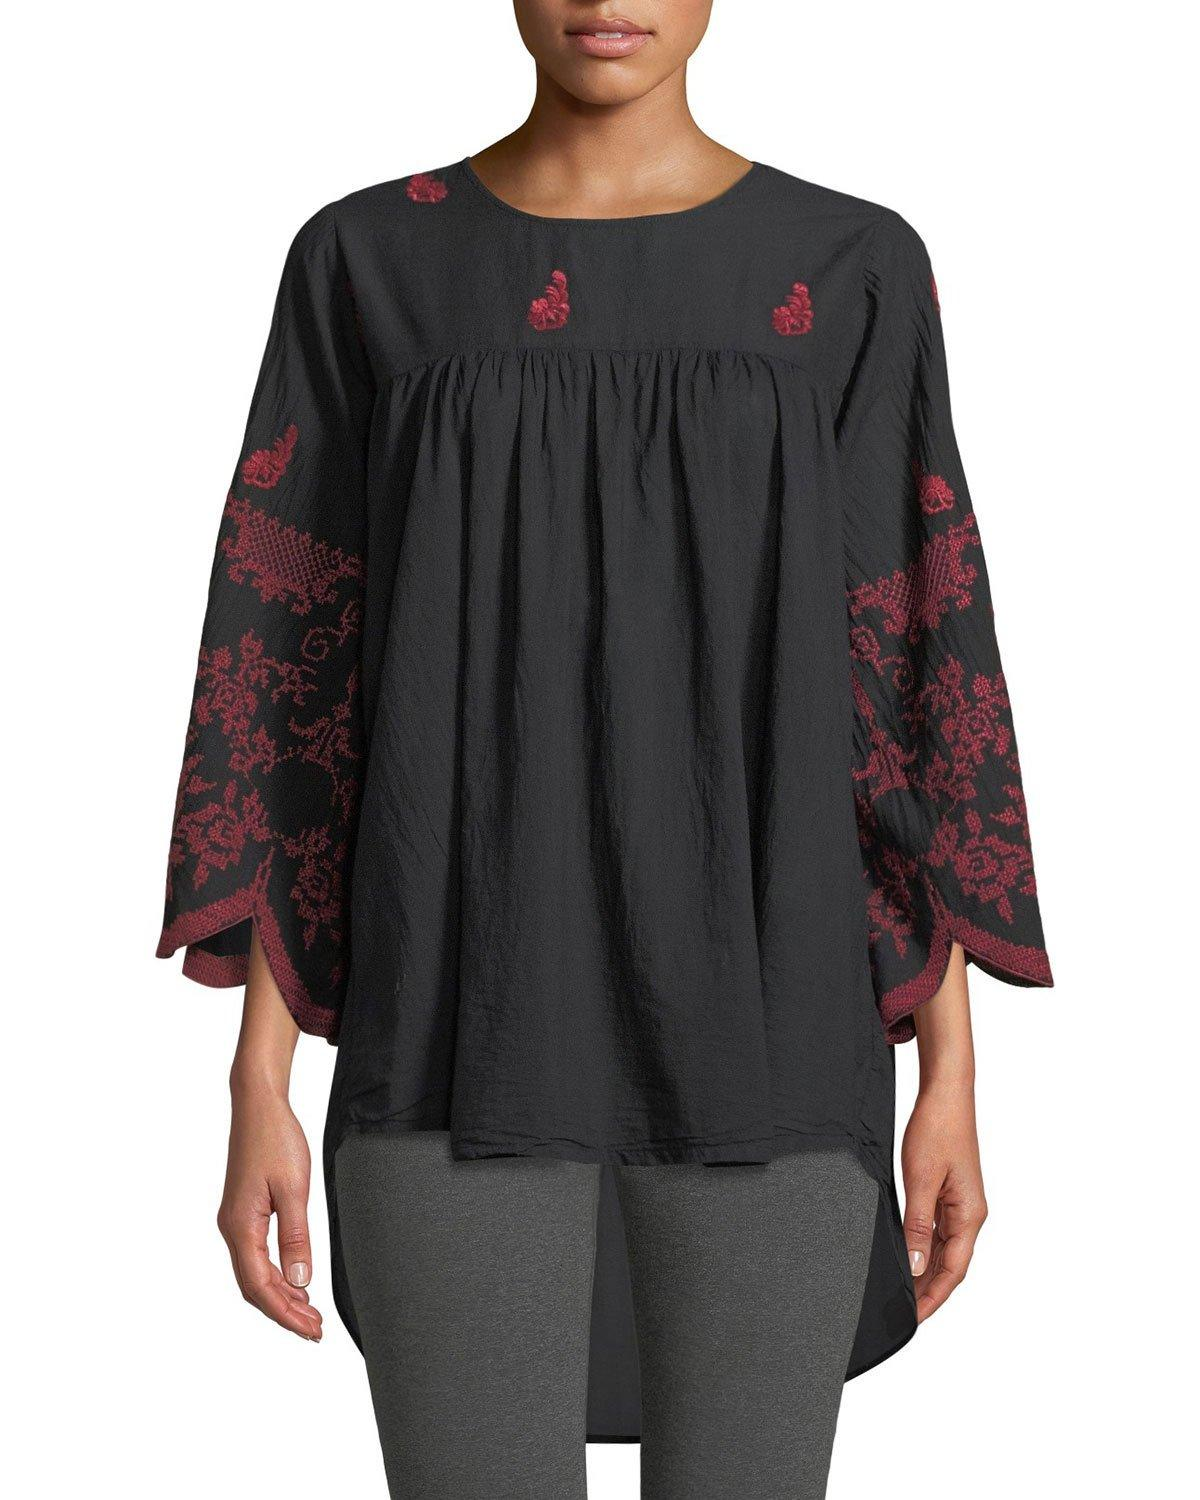 Johnny Was Rose-stitch Voile Blouse With Drama Sleeves In Black